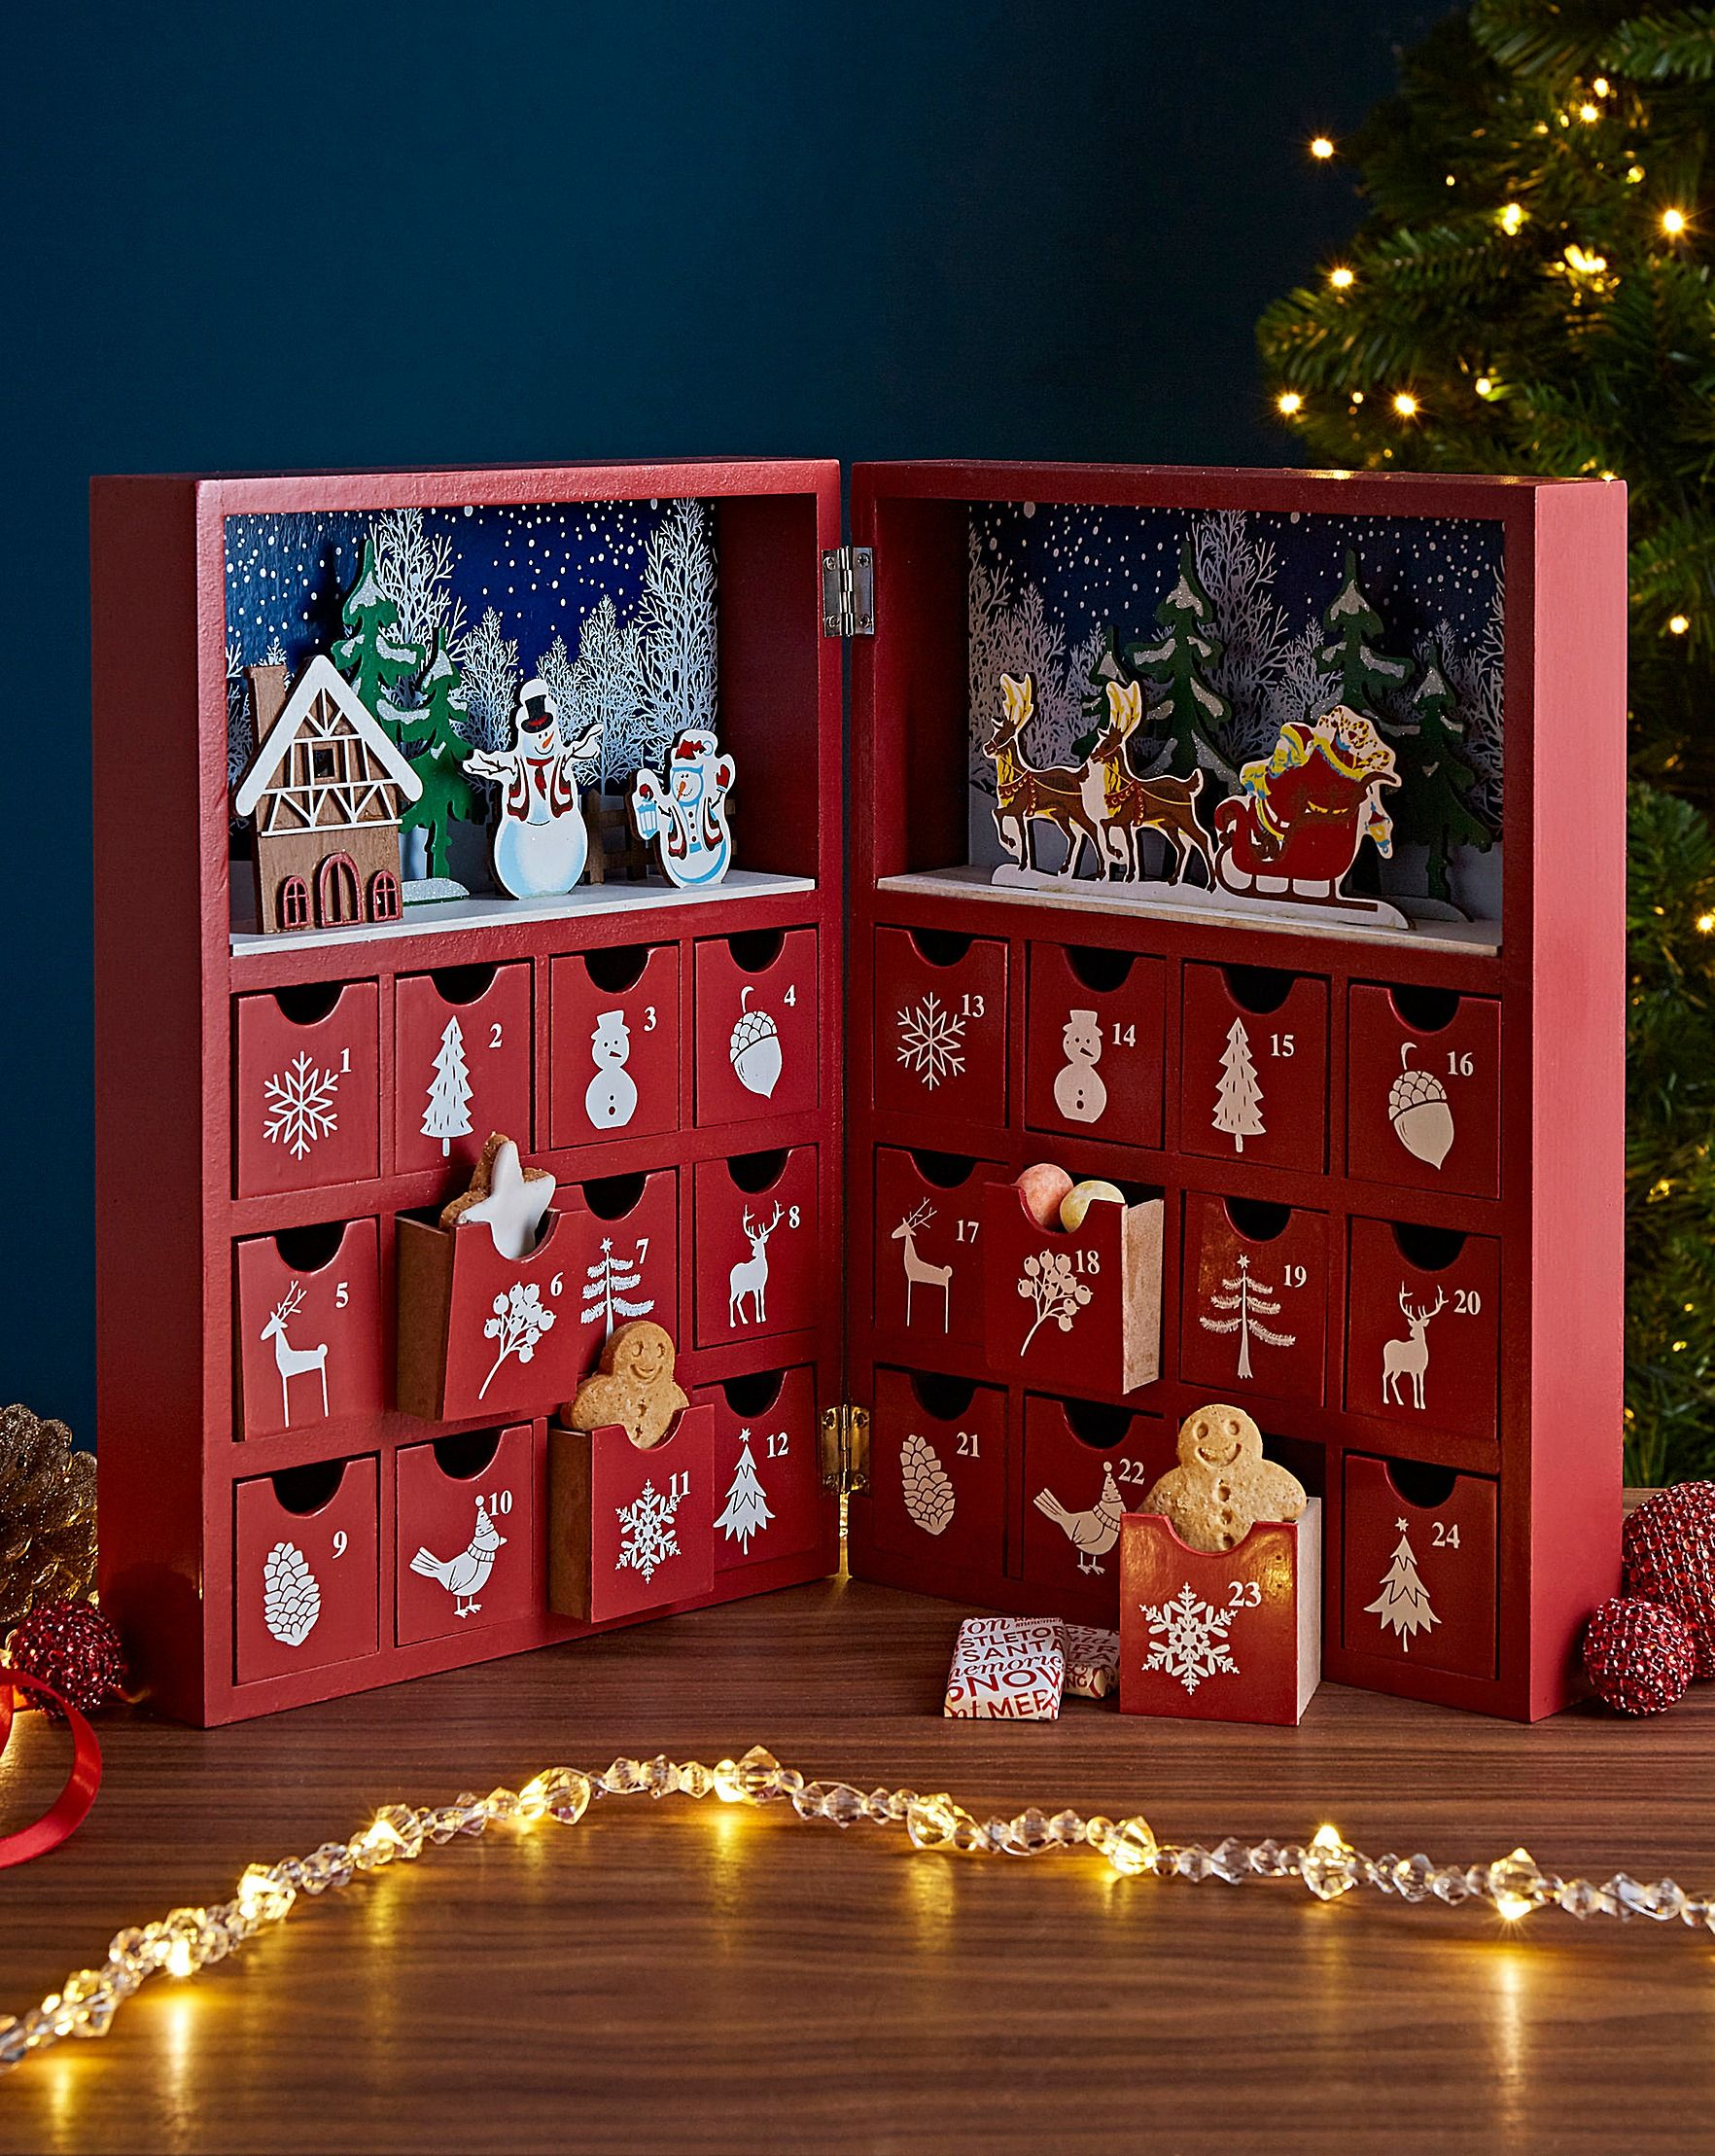 Pin By Sofii 3 Francia On Christmas Decorations Christmas Advent Calendar Diy Christmas Calendar Christmas Advent Calendar